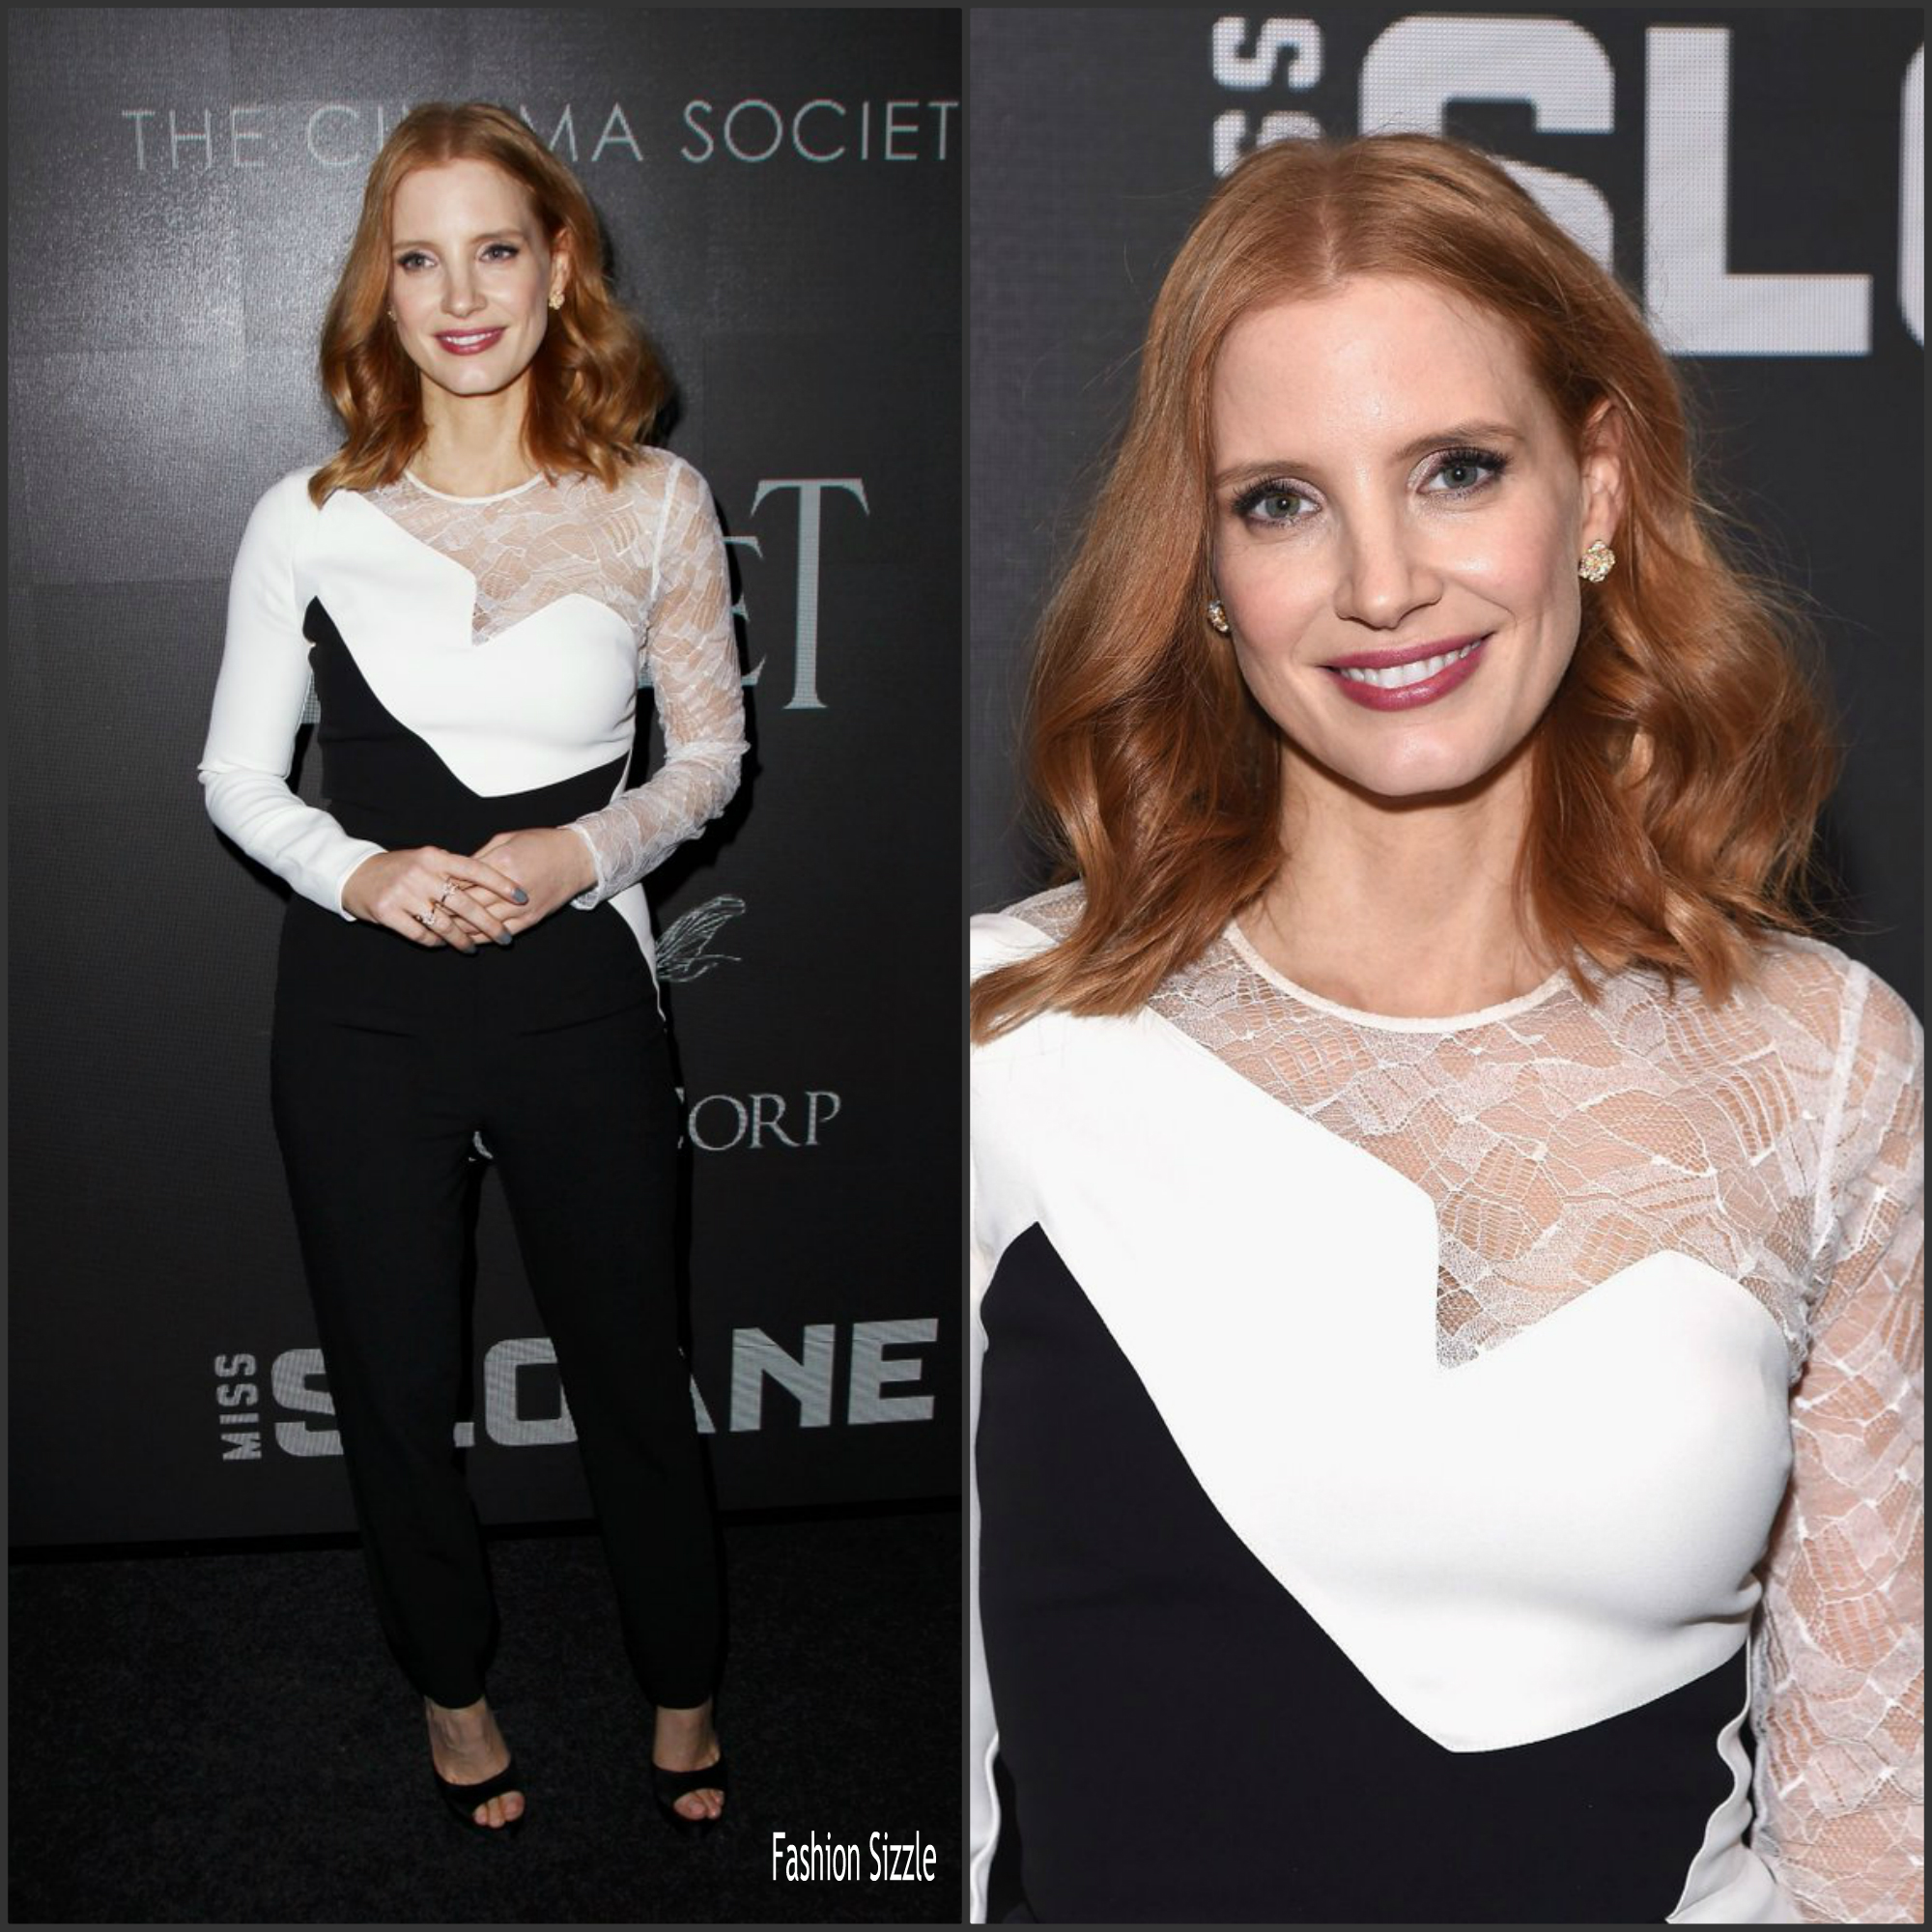 jessica-chastain-elie-saab-at-the-miss-sloane-new-york-premiere